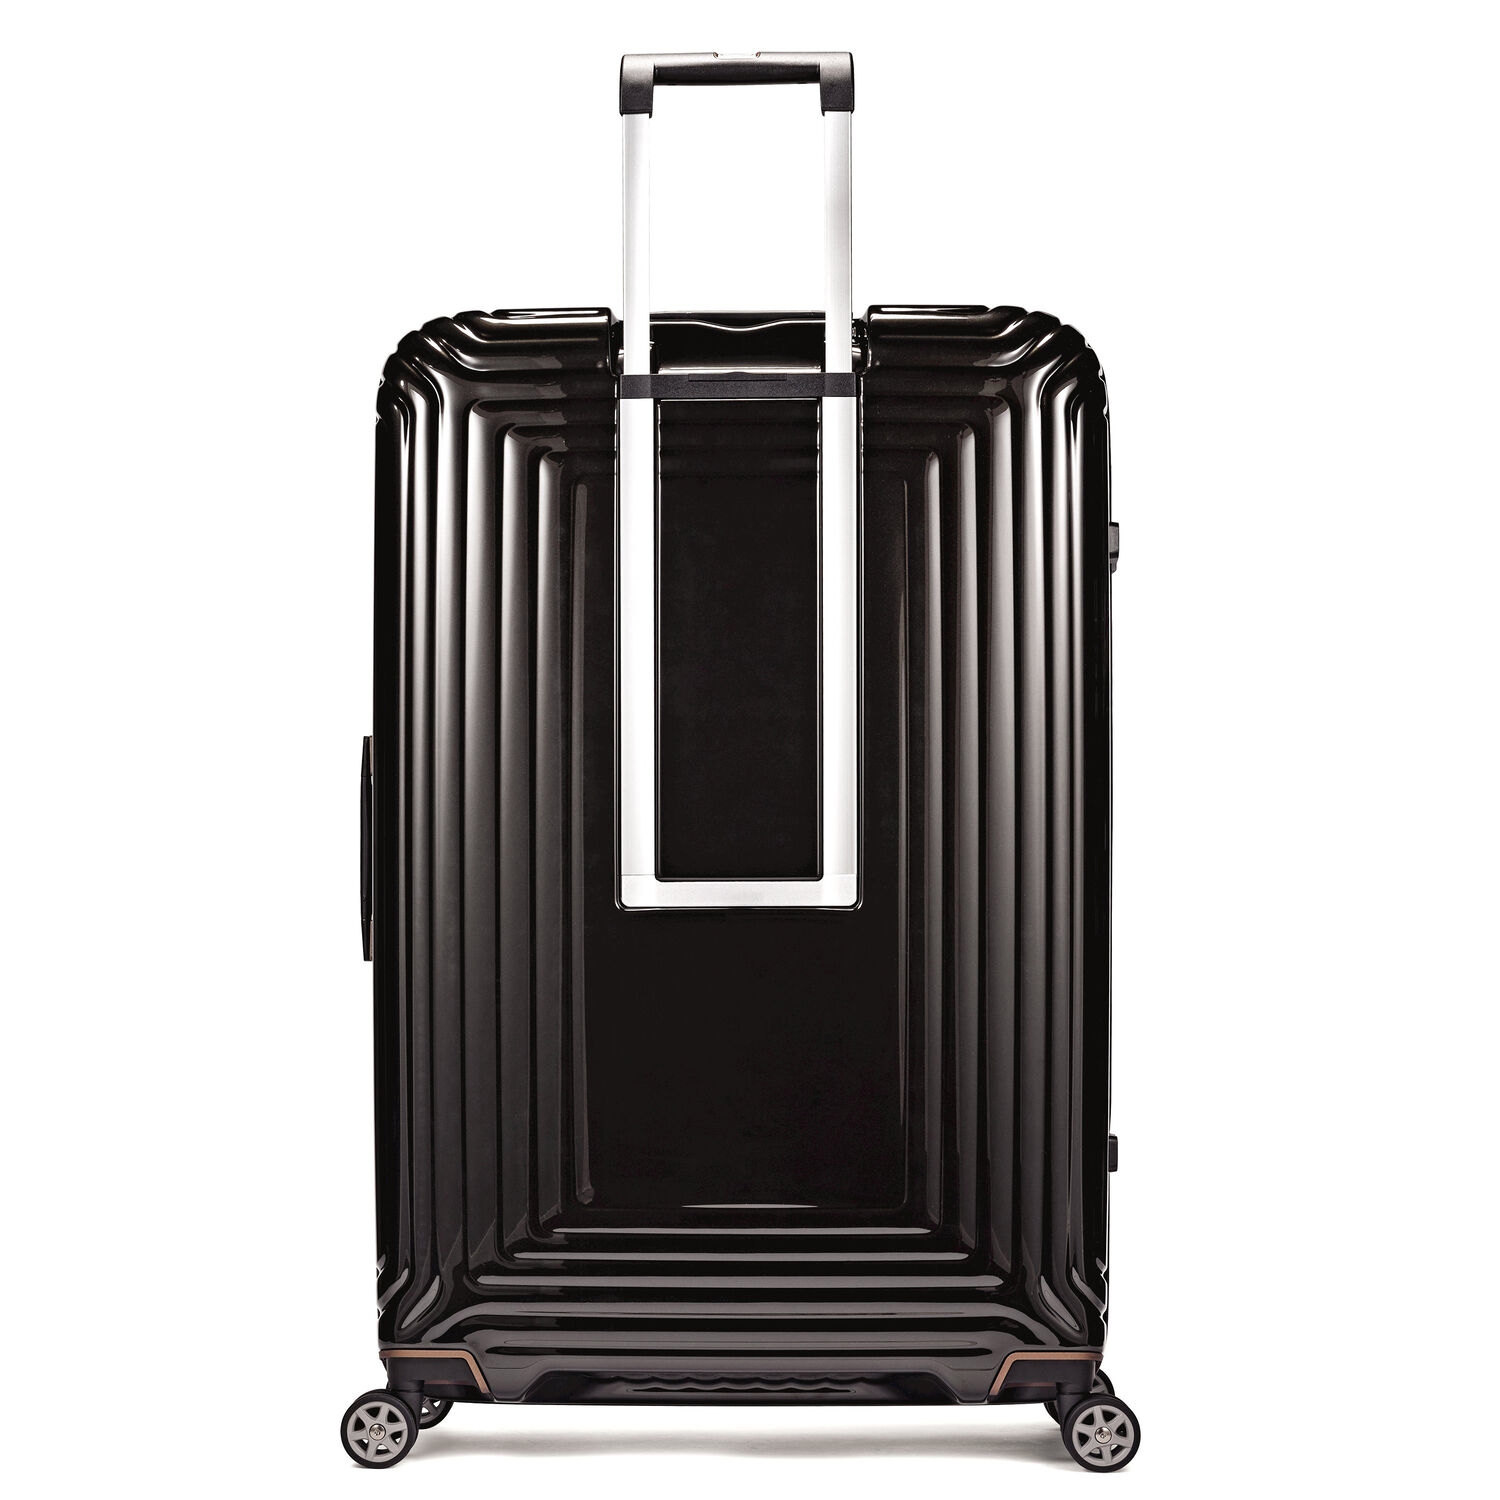 Samsonite neopulse 30 quot spinnersamsonite neopulse 30 quot spinner in the